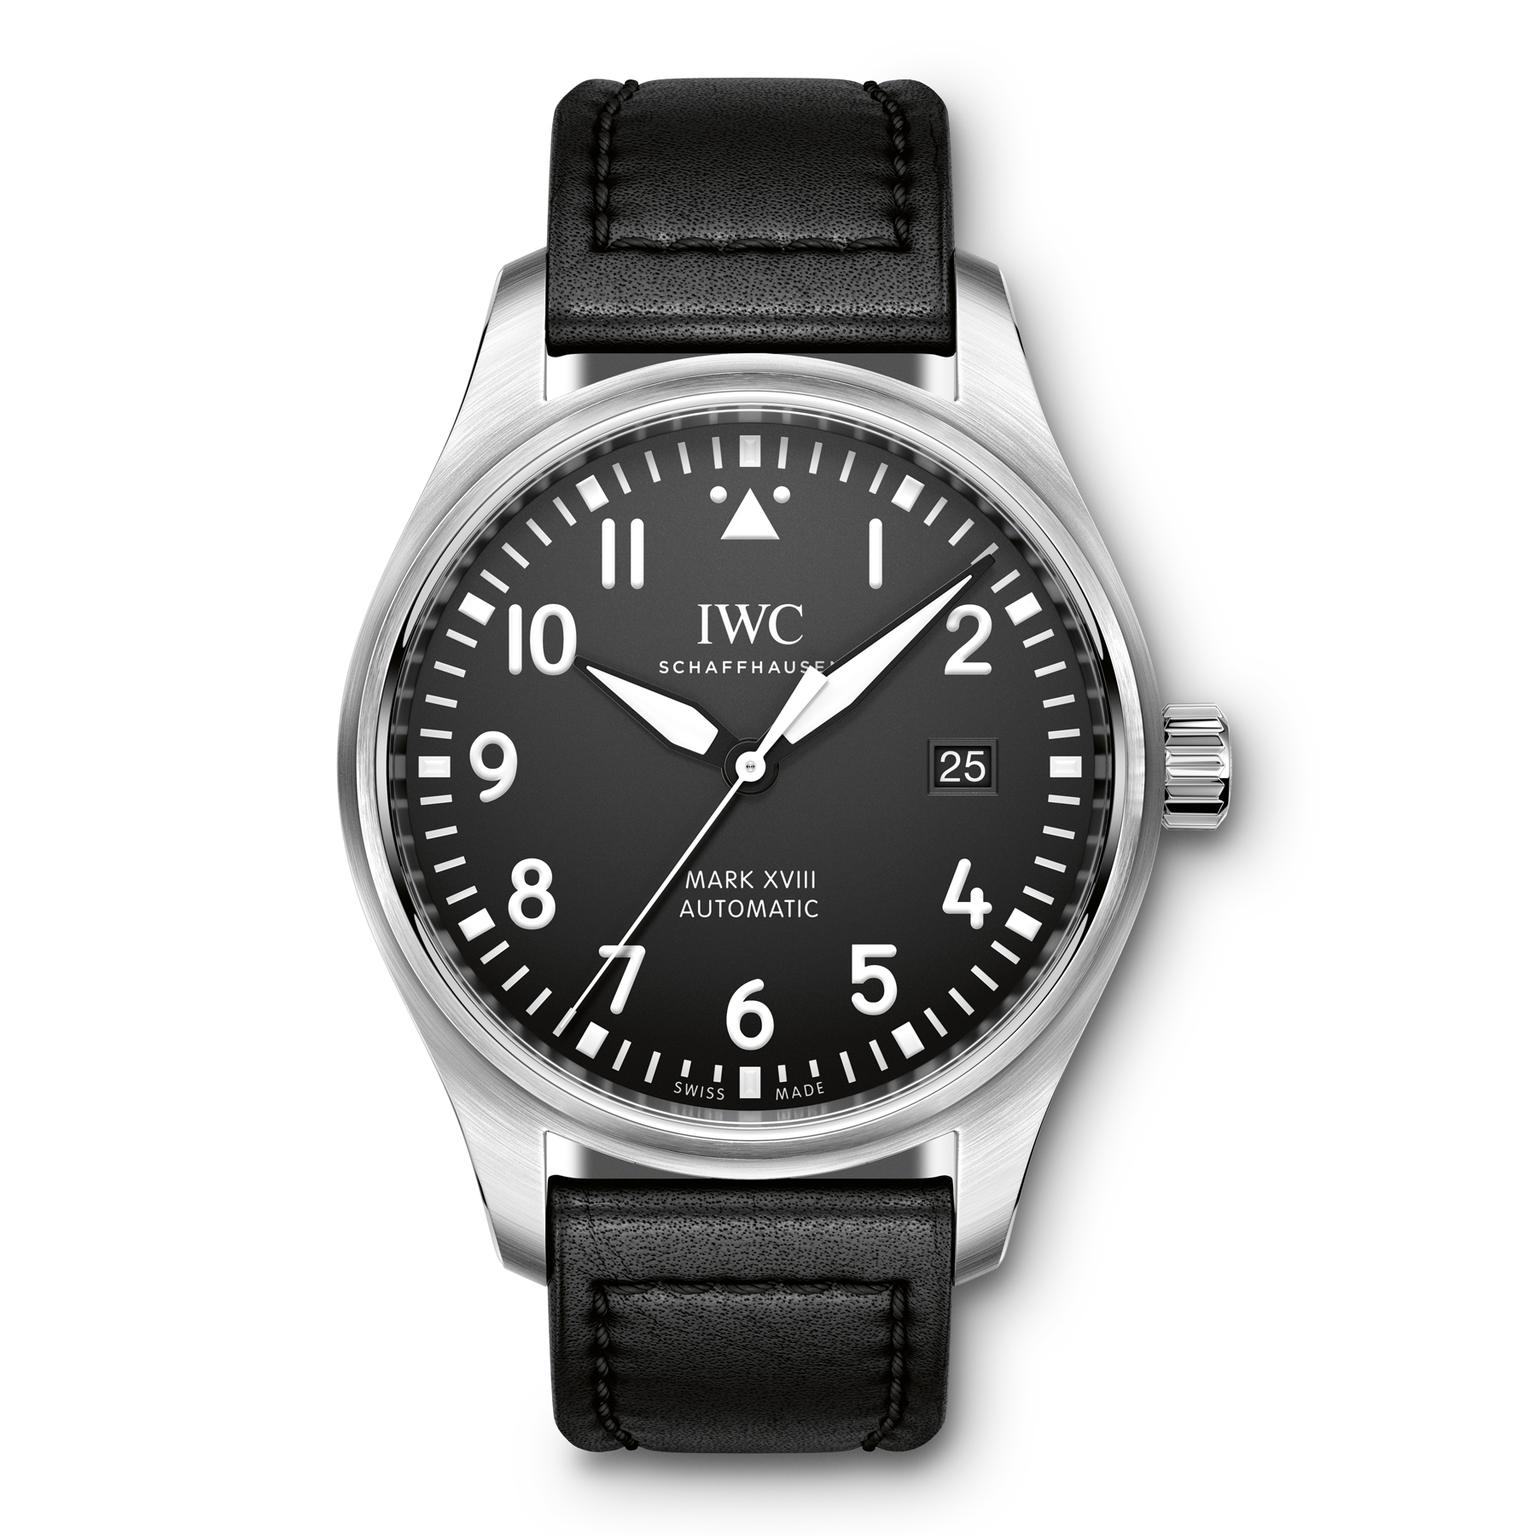 IWC Mark XVIII watch